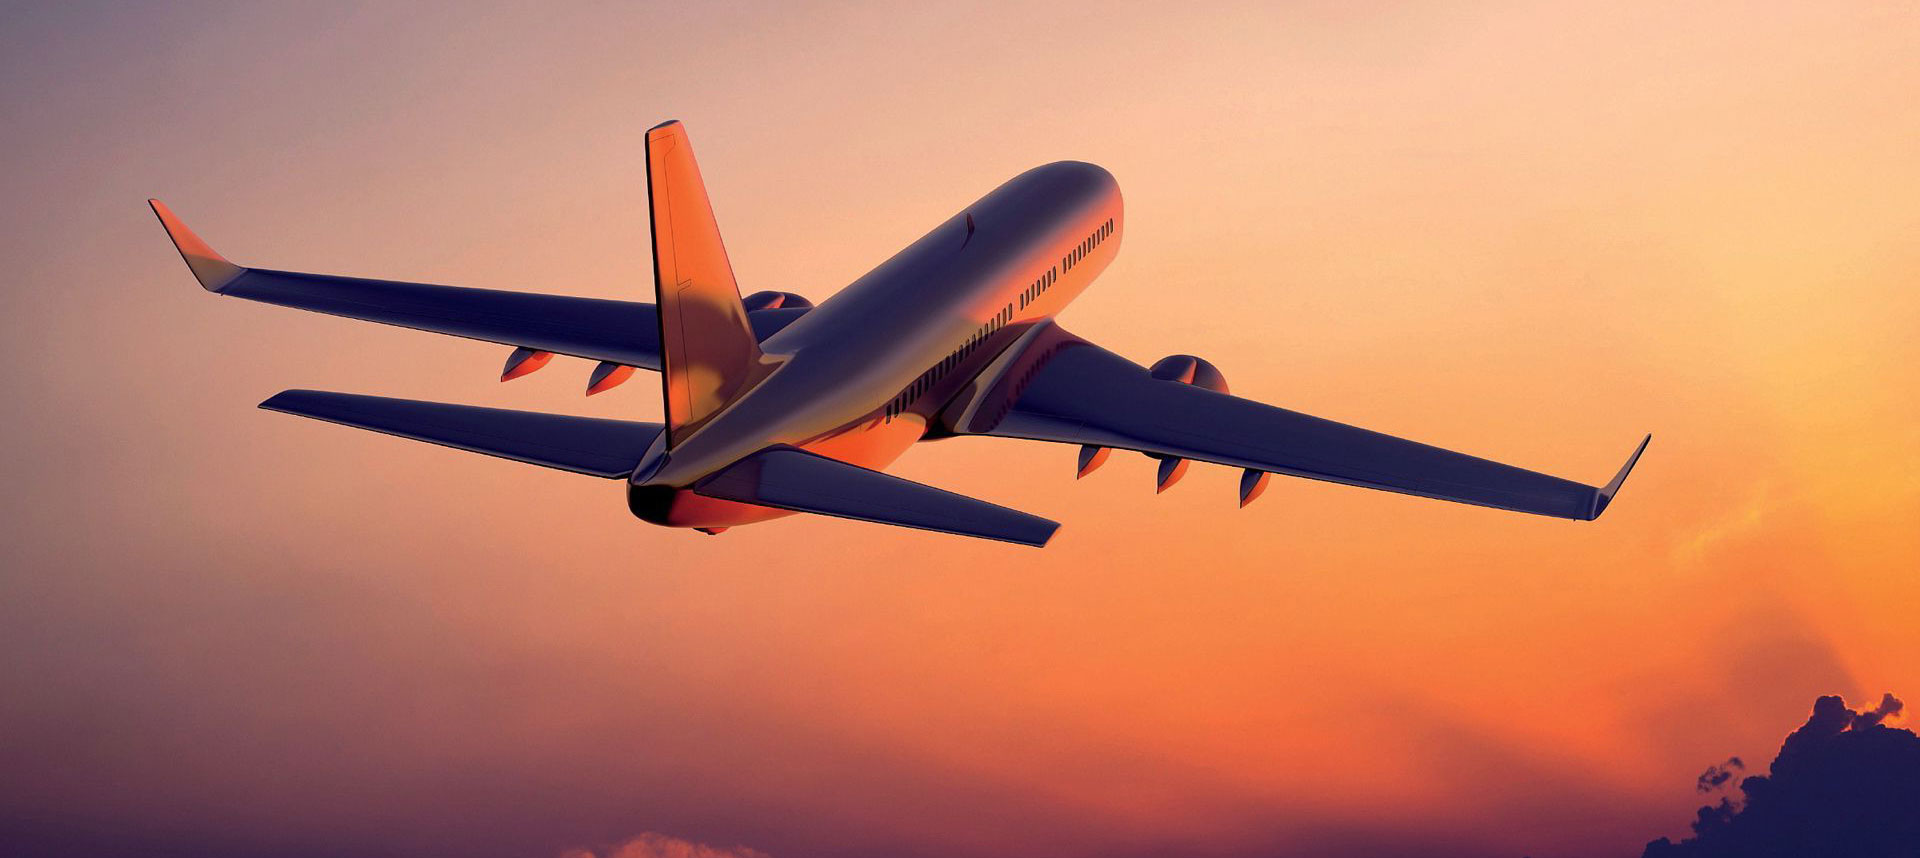 airplane-in-the-sunset